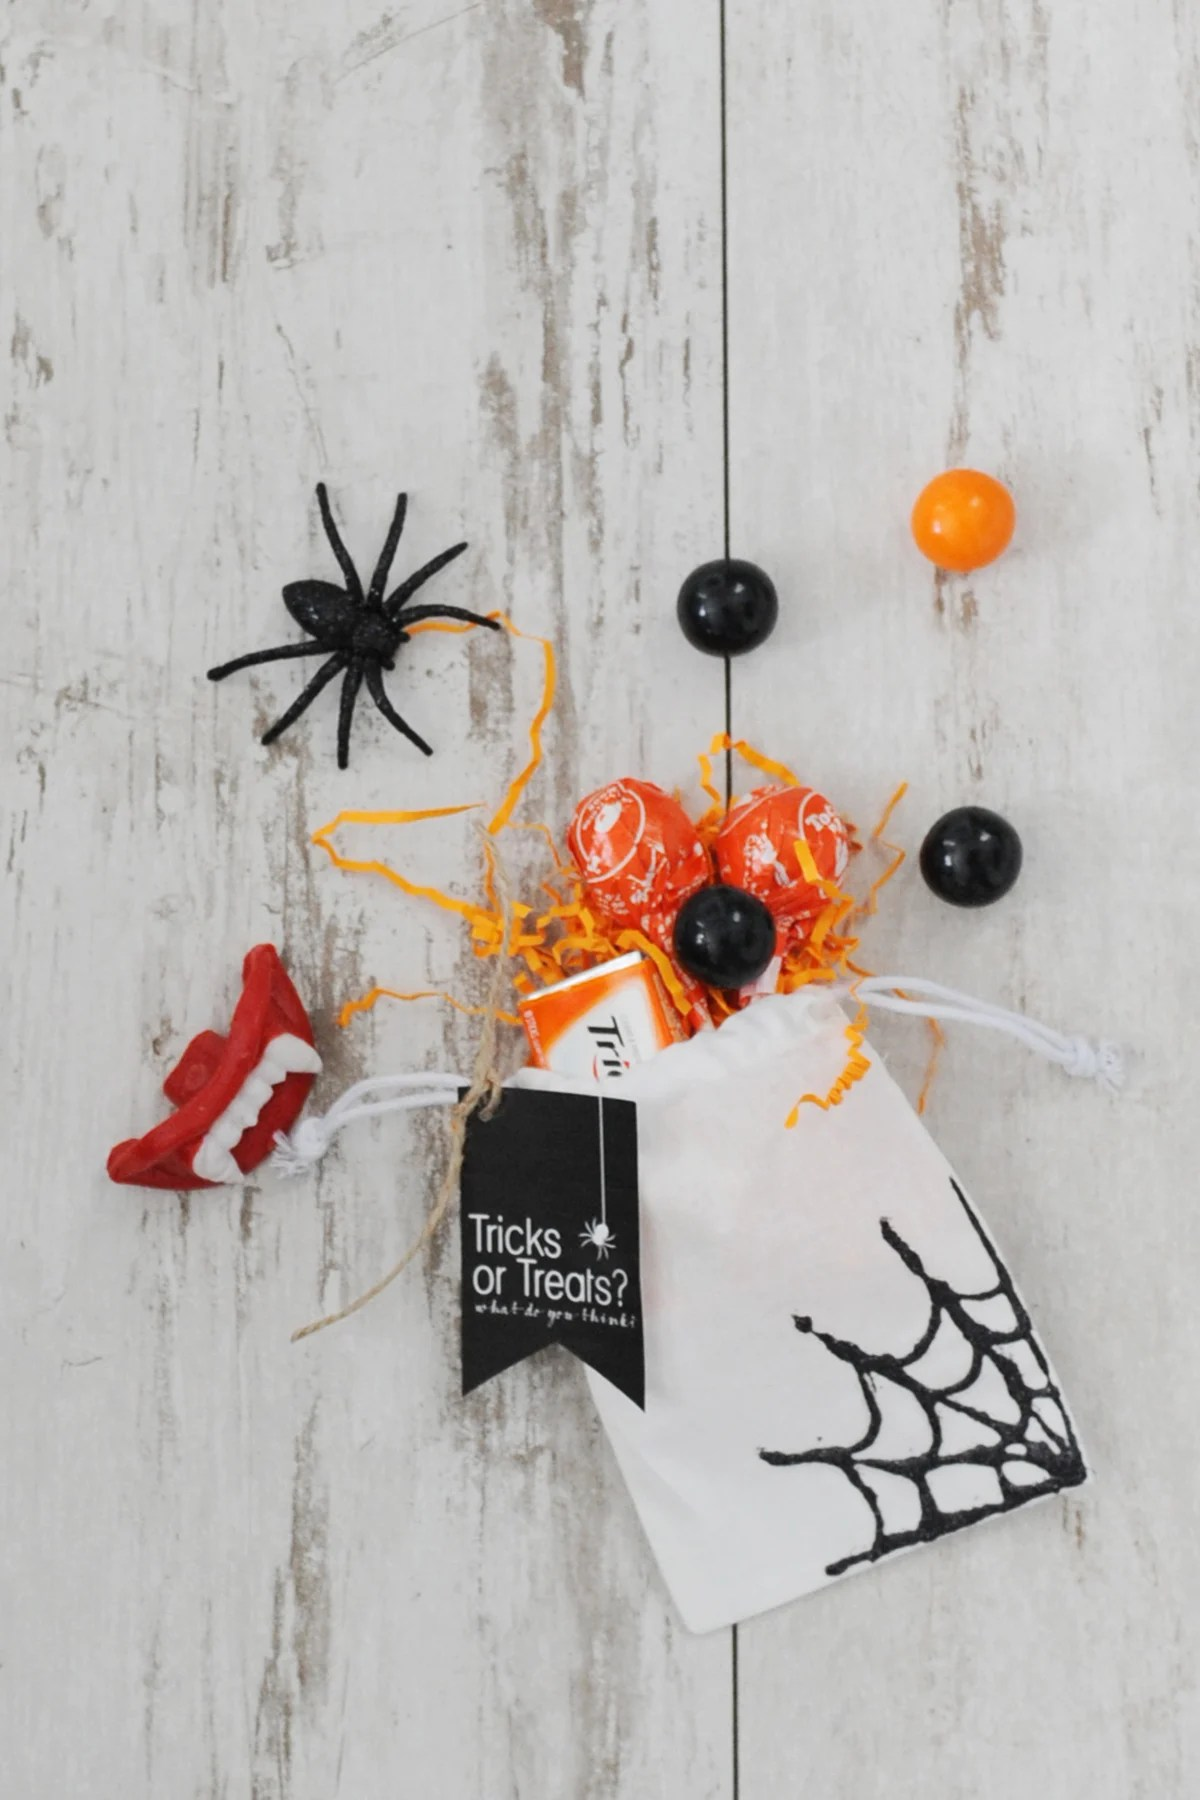 DIY Halloween Trick or Treat Bags with Glitter Spiderwebs